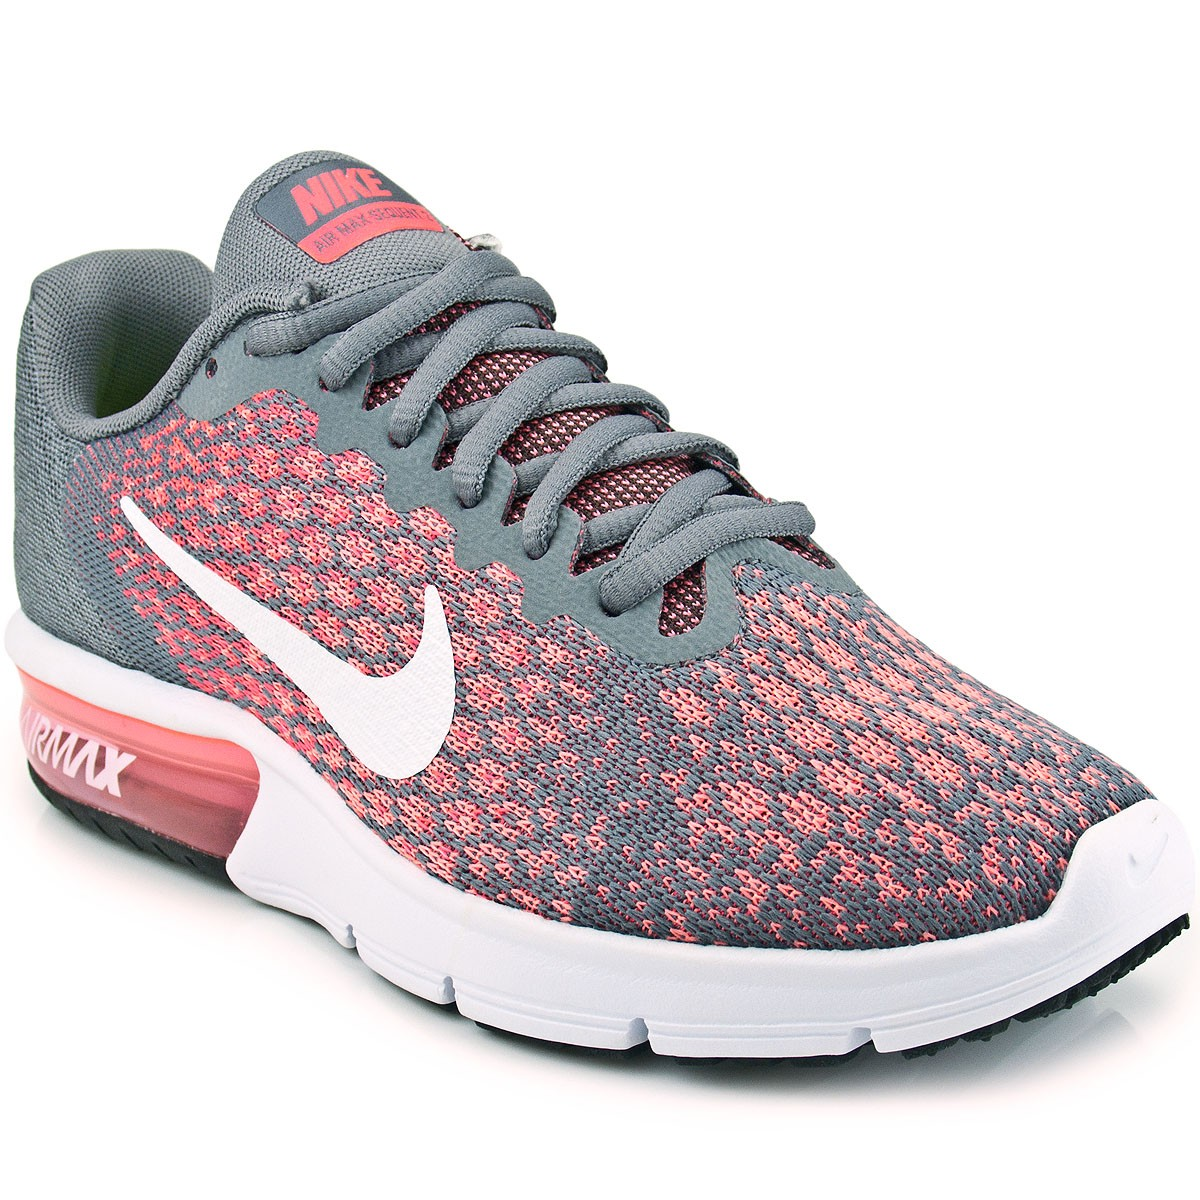 2ed82c512 Tênis Nike Air Max Sequent 2 Feminino 852465